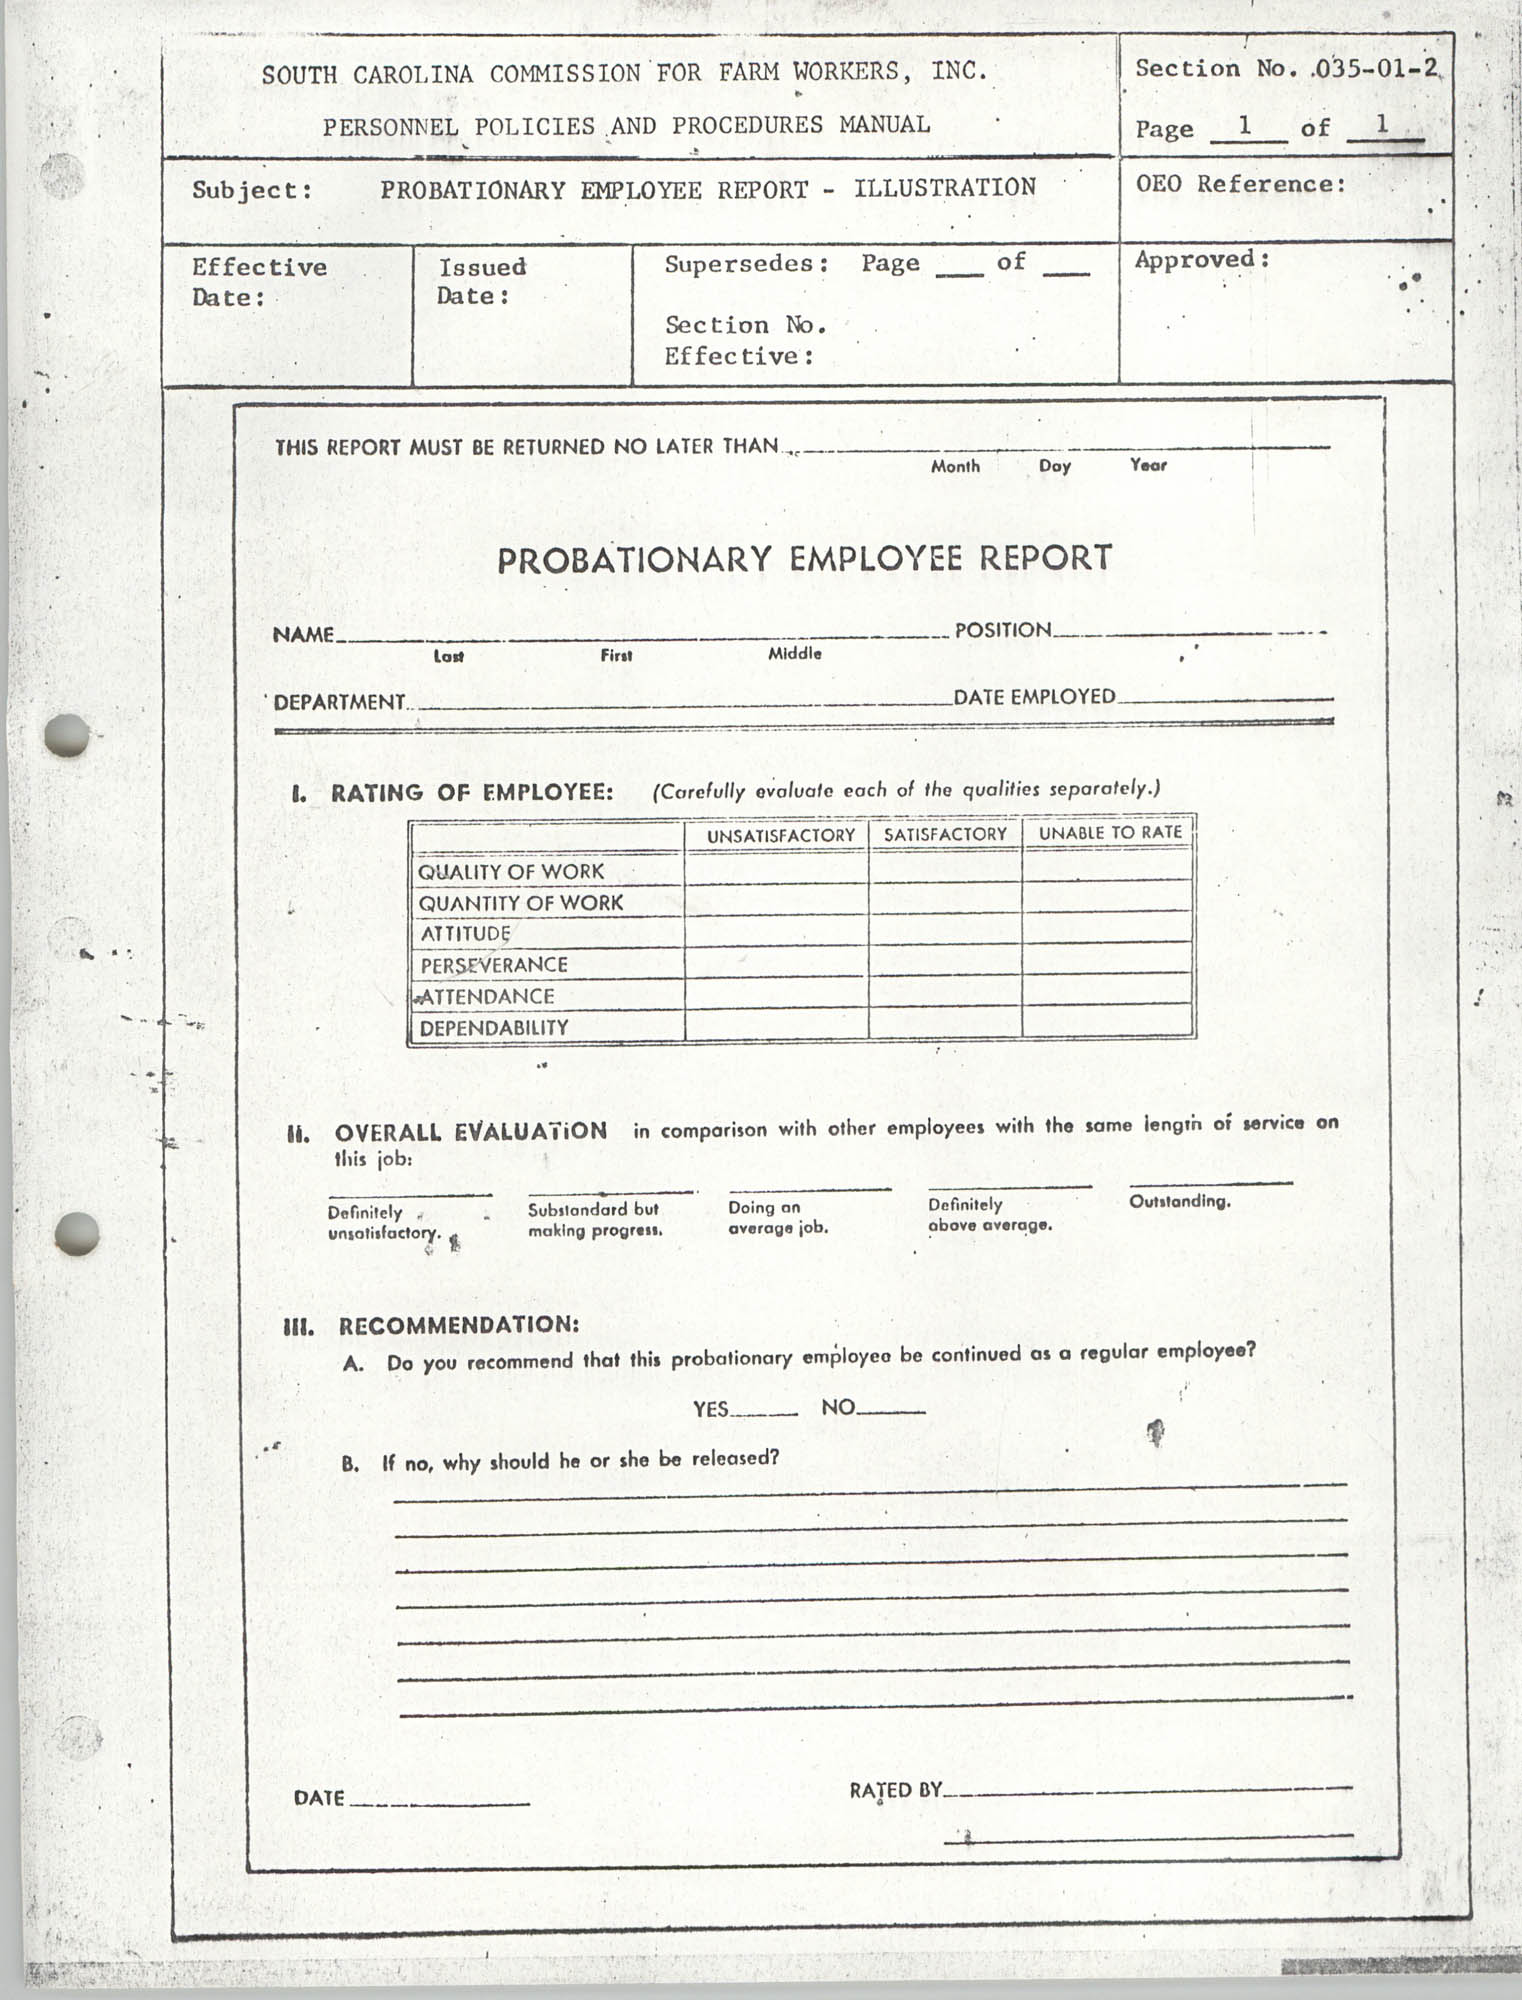 Personnel Policies and Procedures Manual, Section No. 035-01-2